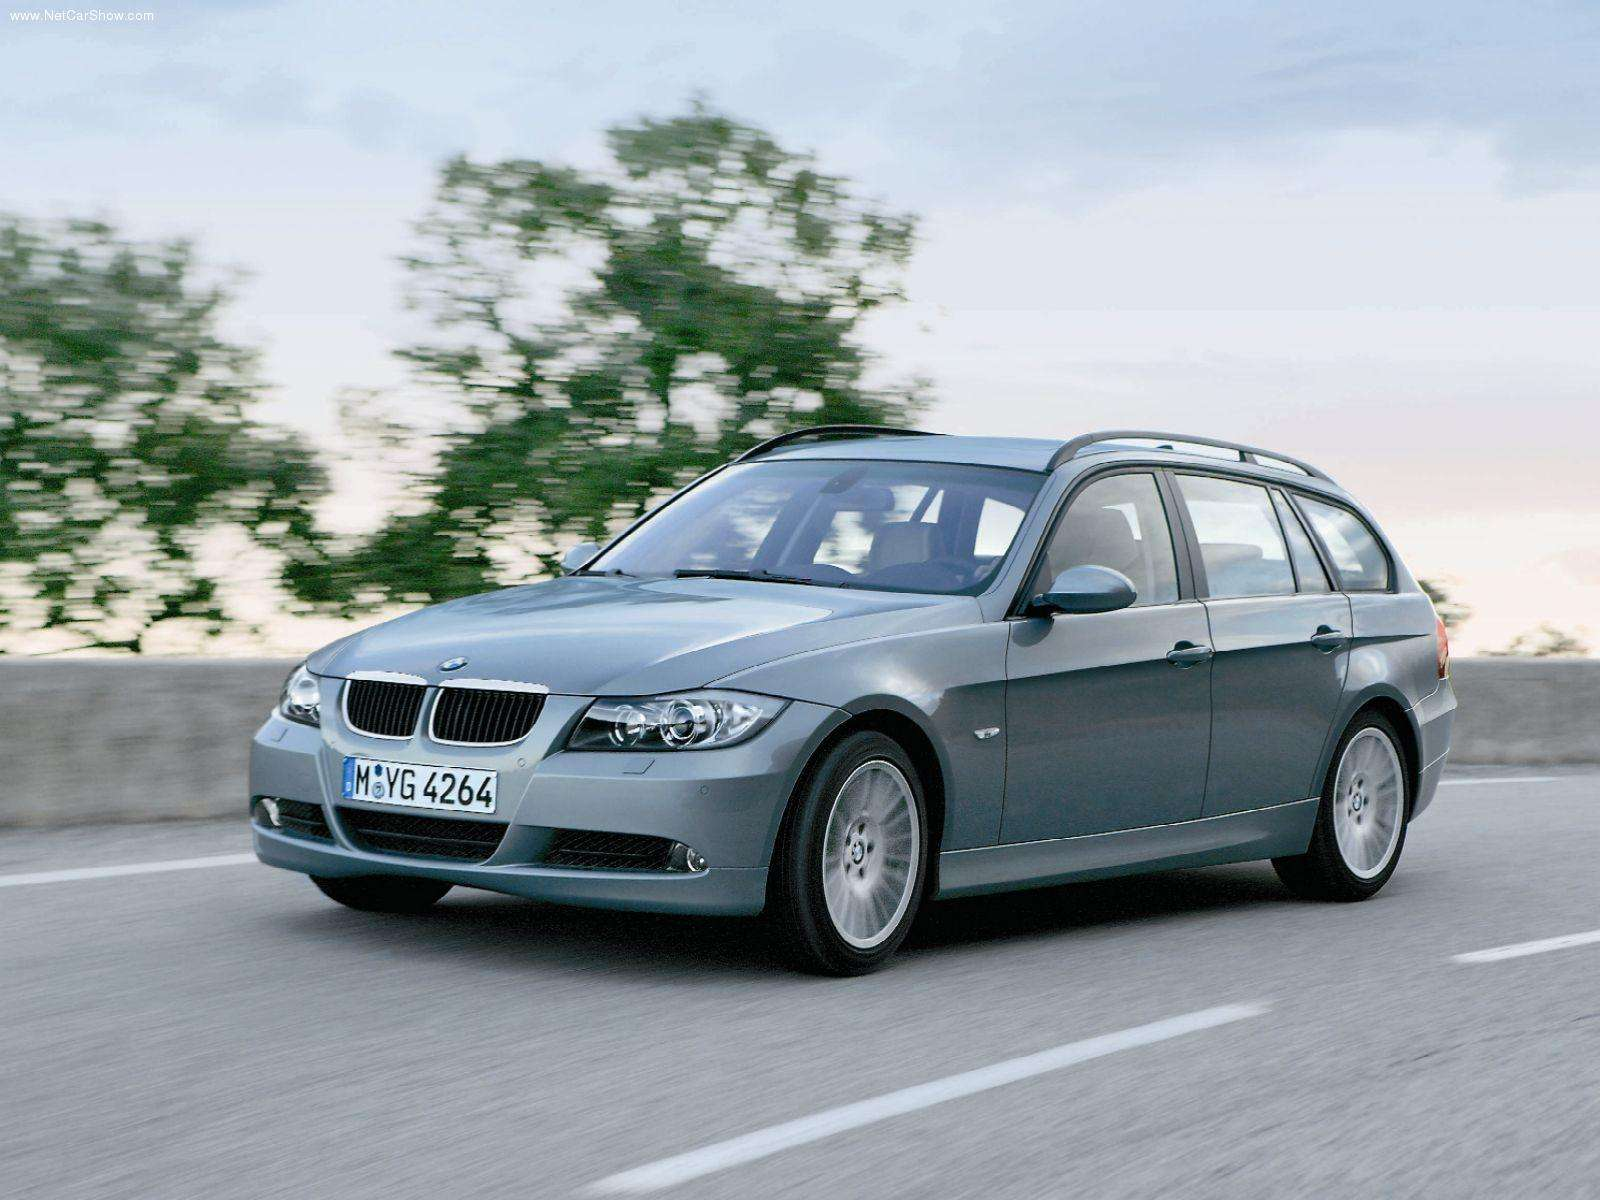 3dtuning of bmw 3 series wagon 2005 unique. Black Bedroom Furniture Sets. Home Design Ideas